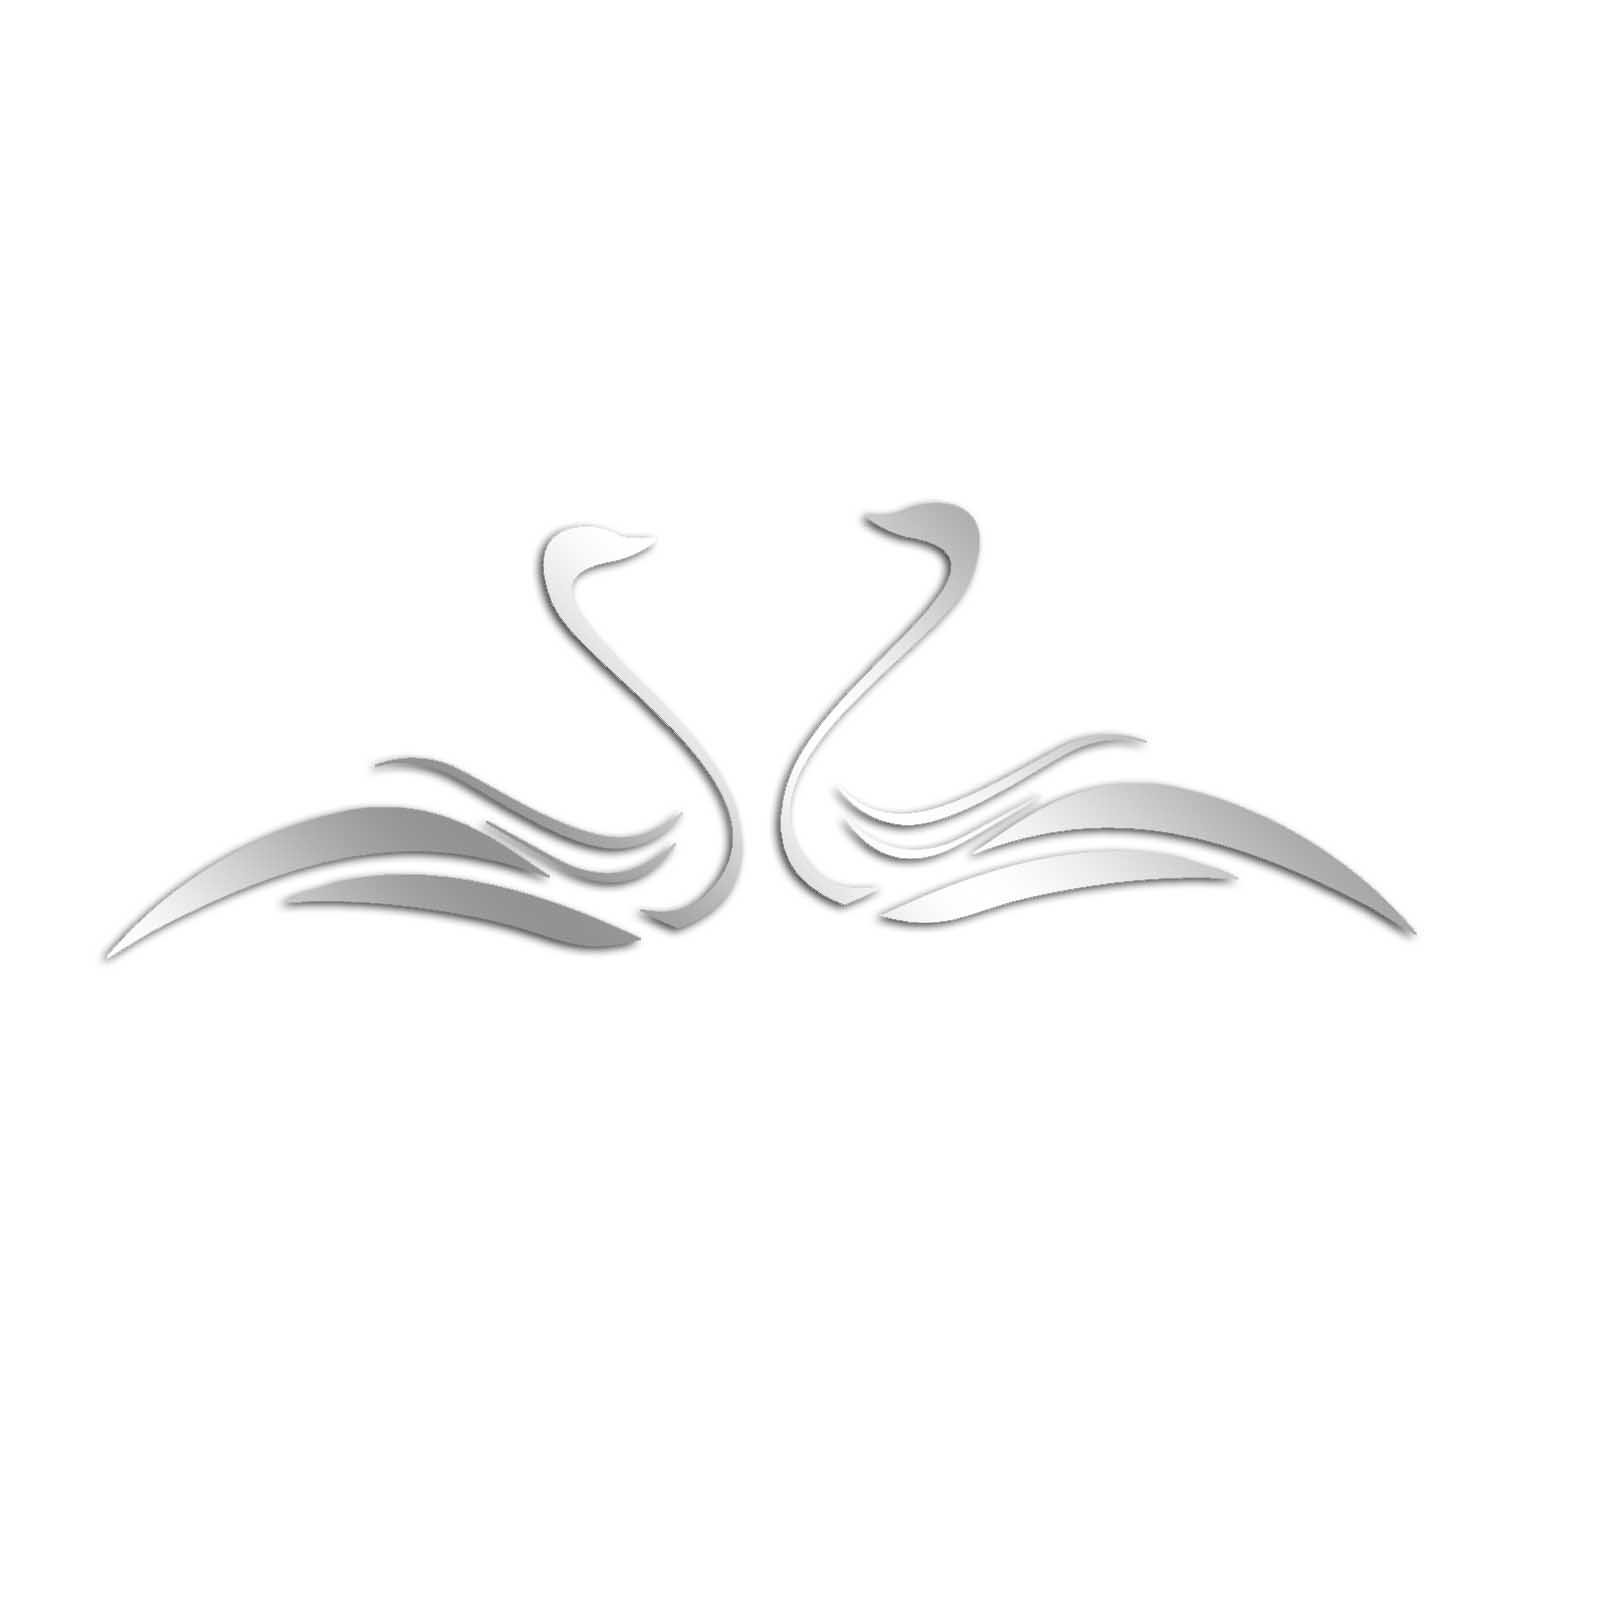 Decorative Removable Wall Sticker Mirror PLEXIGLASS (24.8'' x 8.7'') Number of Pieces 10 / Glass Modern Art Pattern Ornamental Design Swan Animal / Background Decoration Perfect Design For Home, Office,